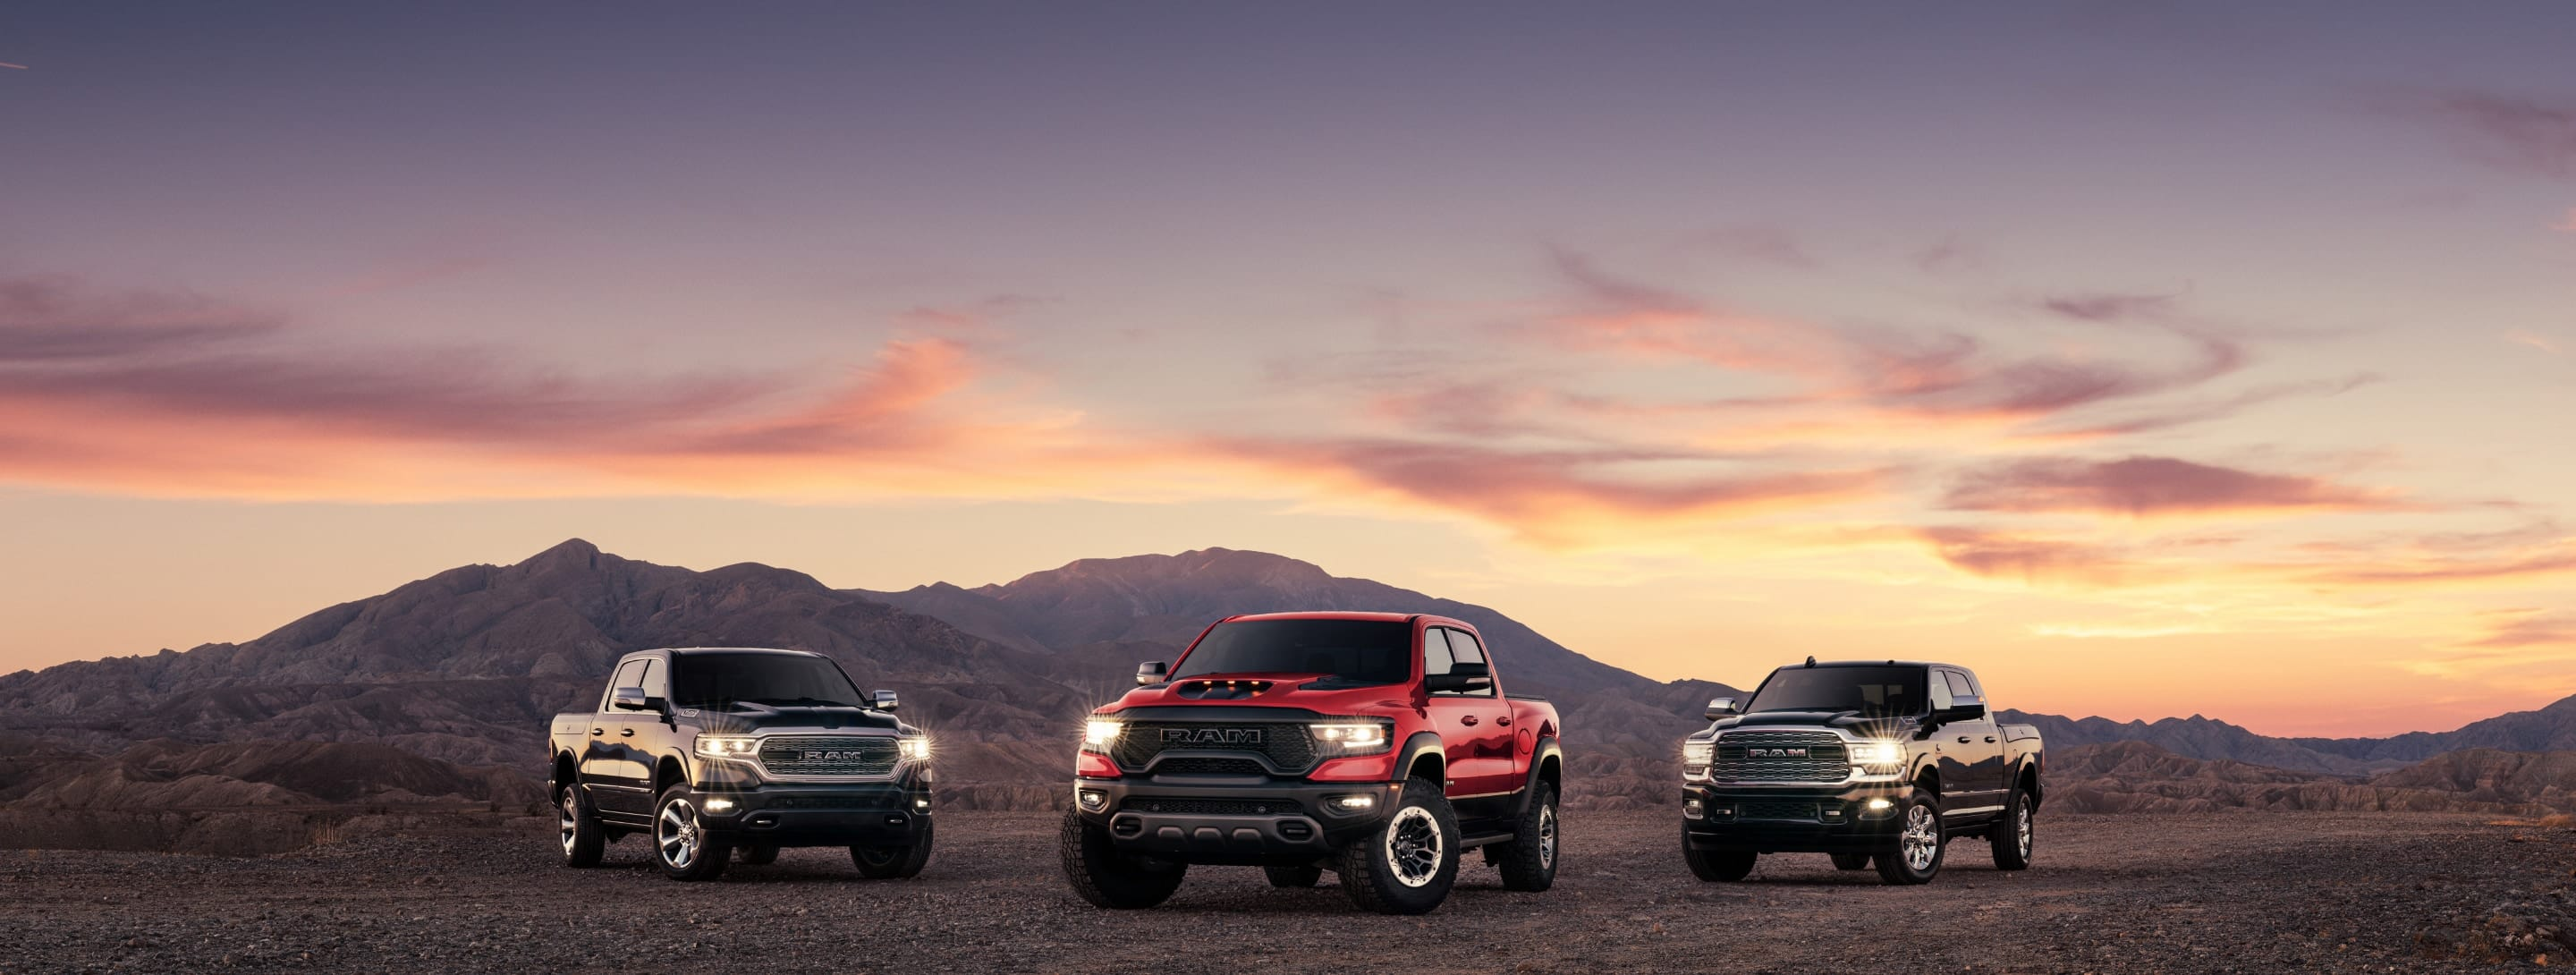 Three 2021 Ram trucks parked on a mountain trail—a Ram 1500 Limited, Ram 1500 TRX and Ram 2500 Limited.